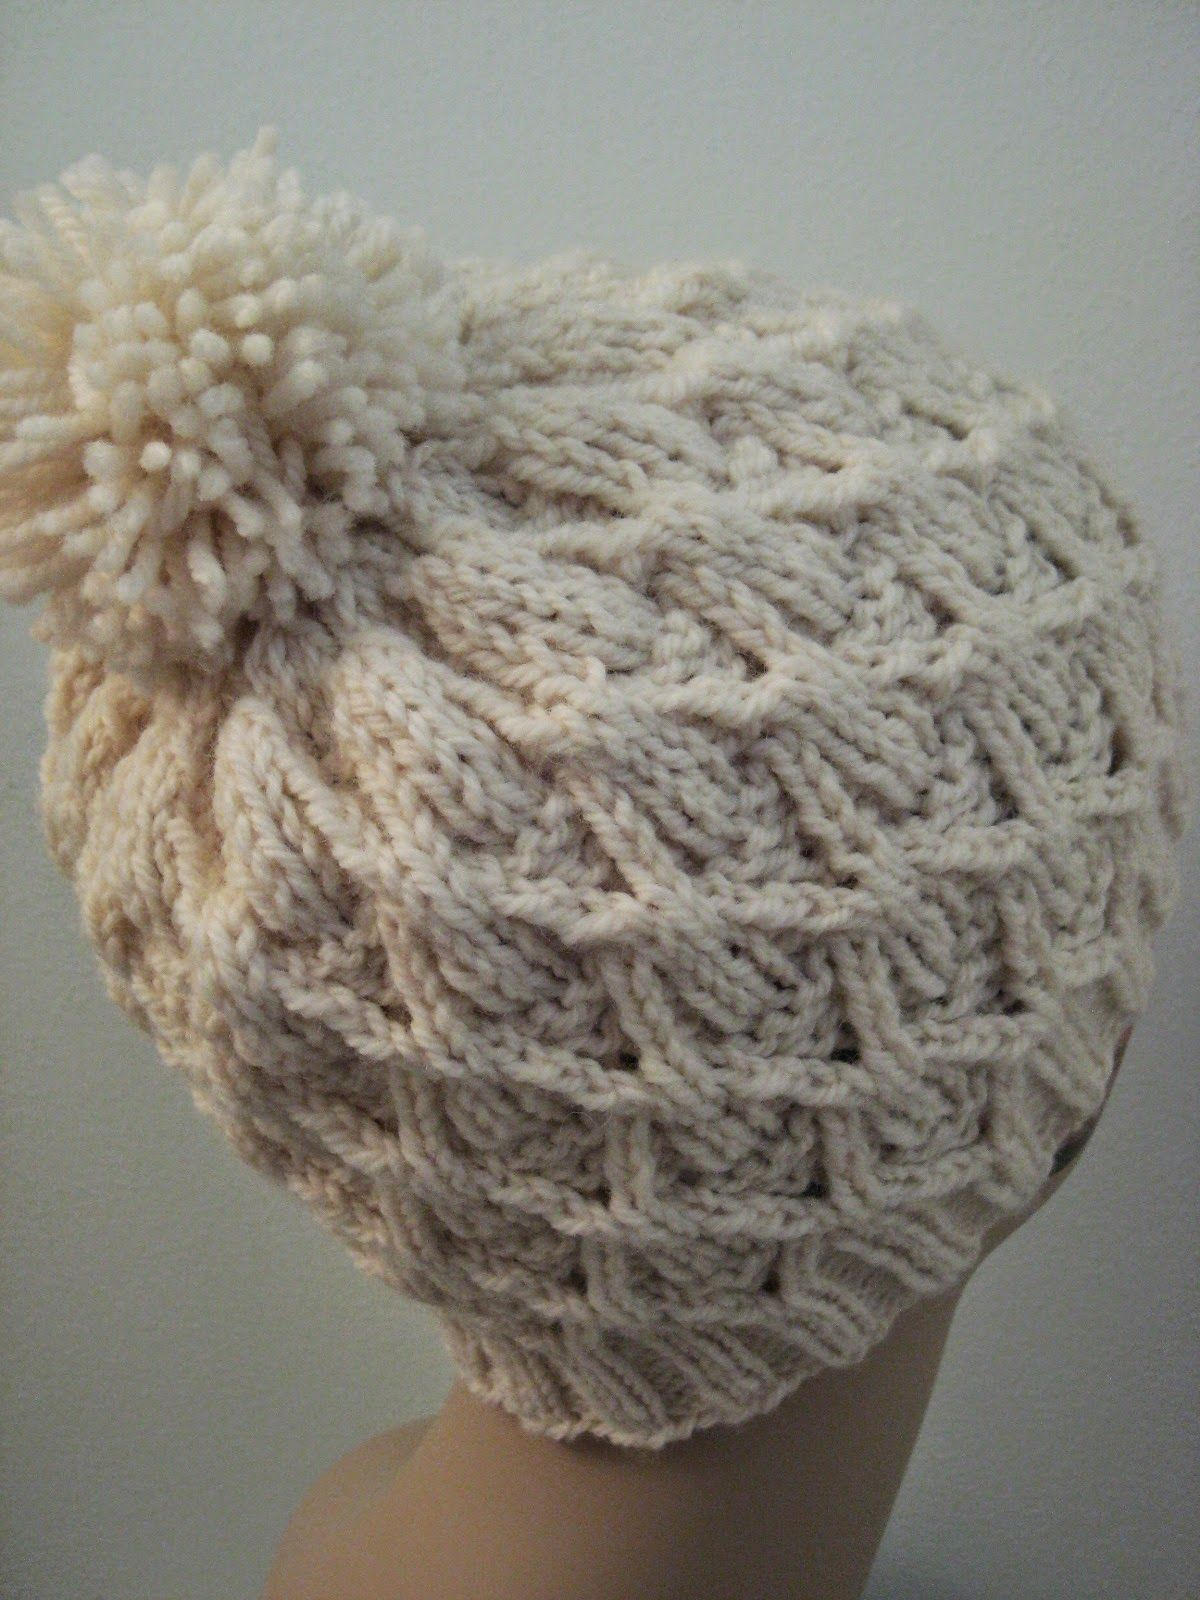 Wickerwork Hat | Knit patterns, Patons classic wool and Patterns